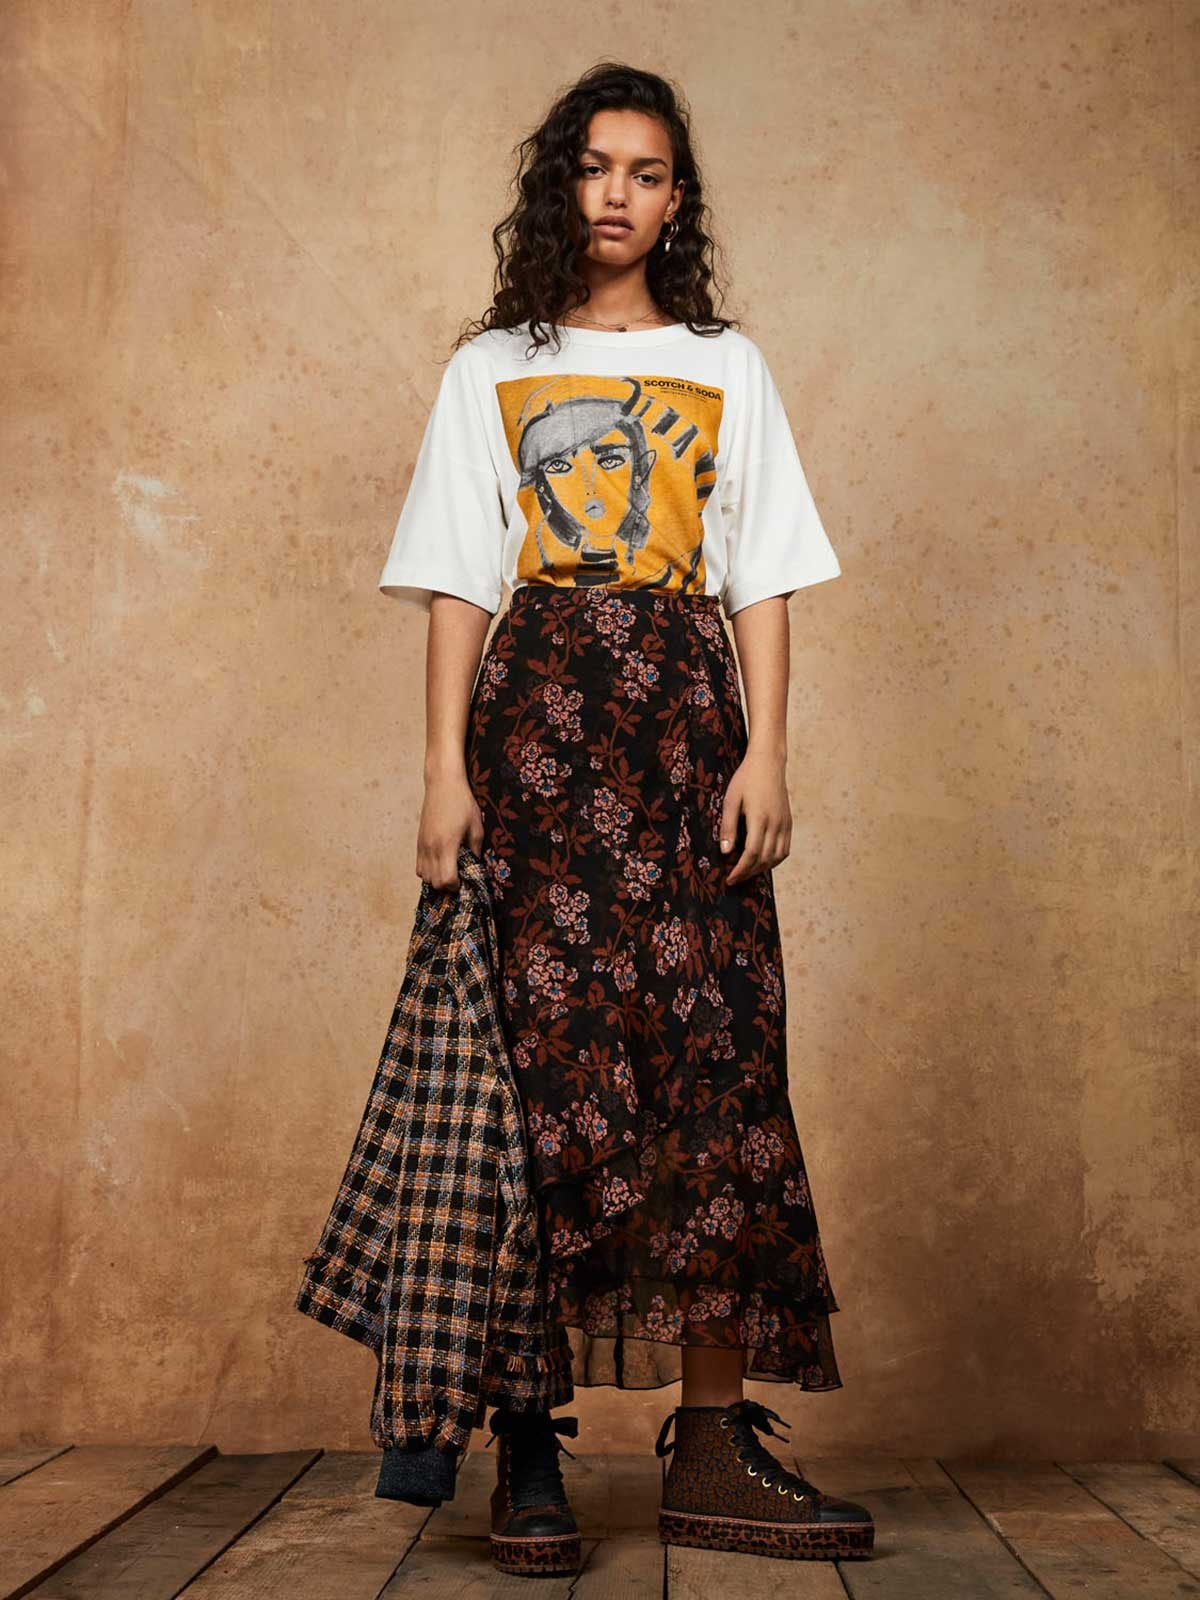 Scotch & Soda announces limited edition capsule collaboration